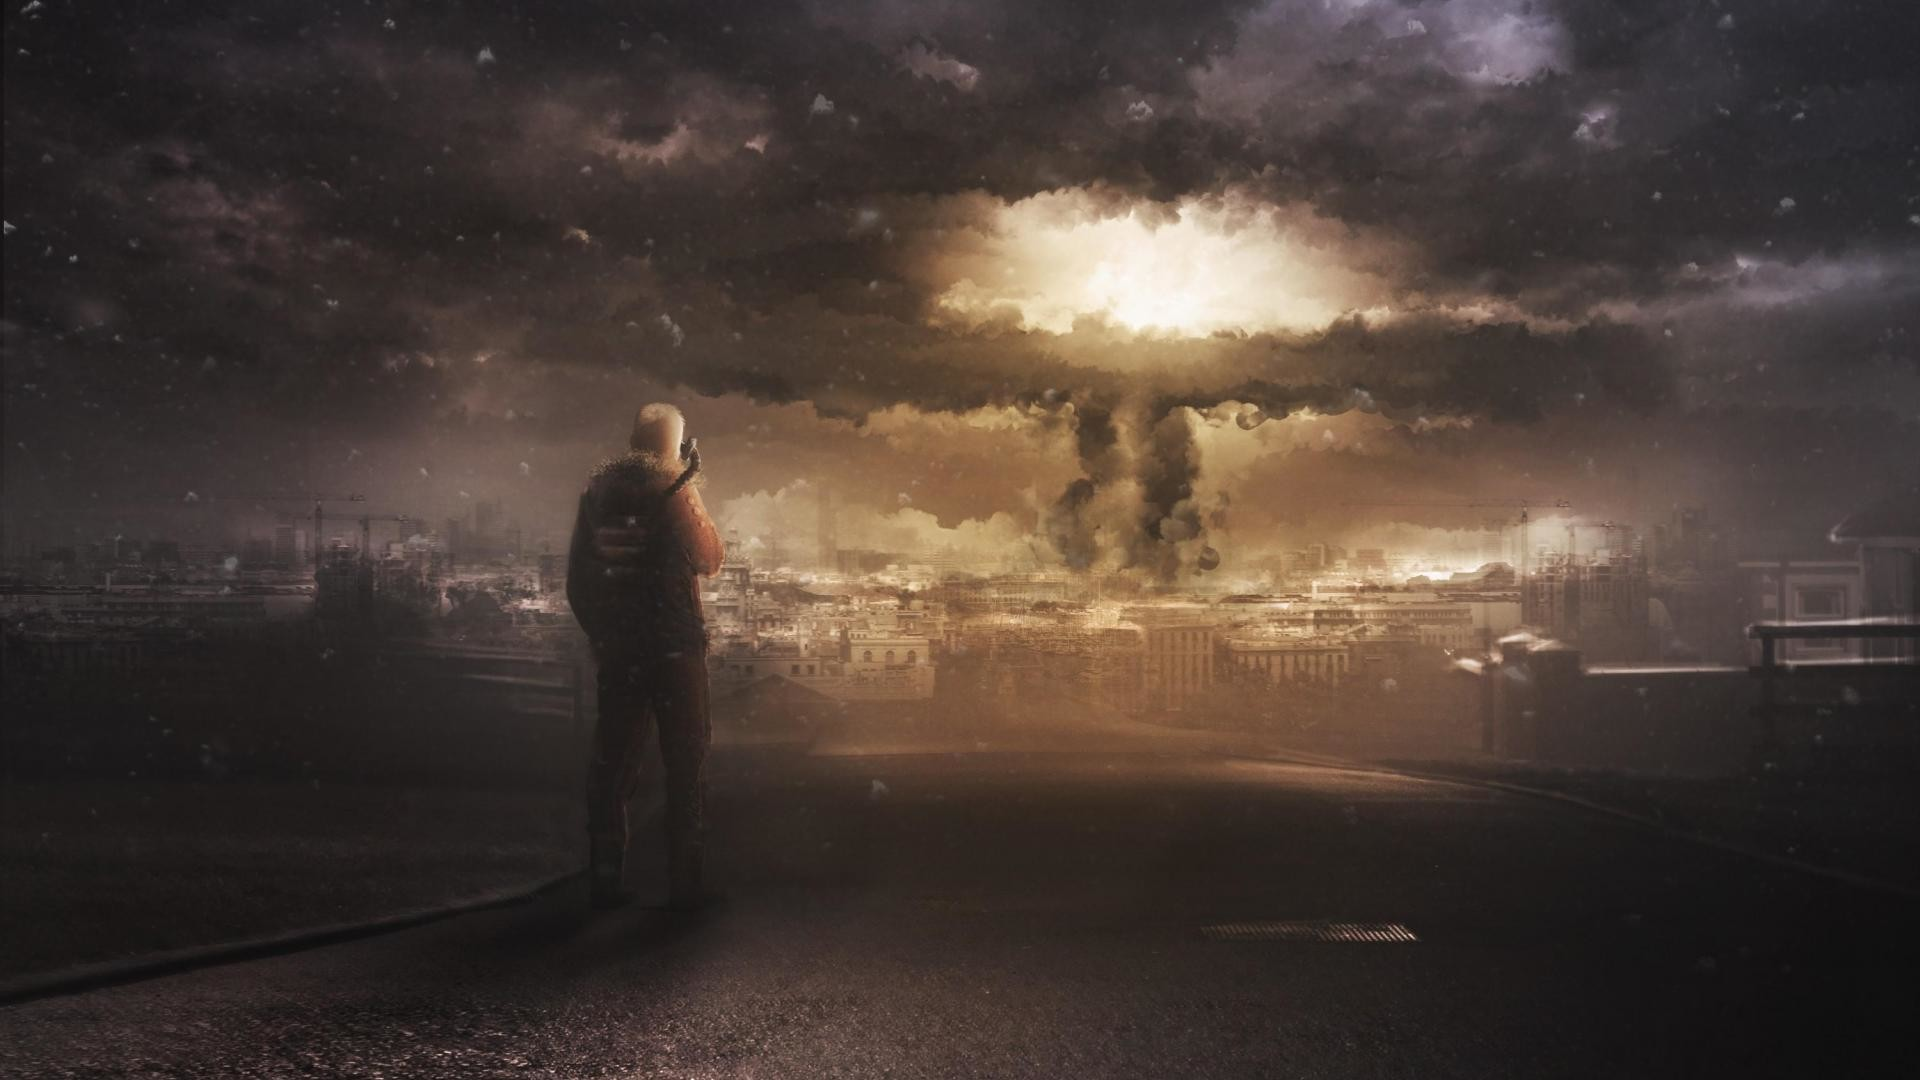 Nuclear bomb wallpaper 69 images - Explosion wallpaper ...